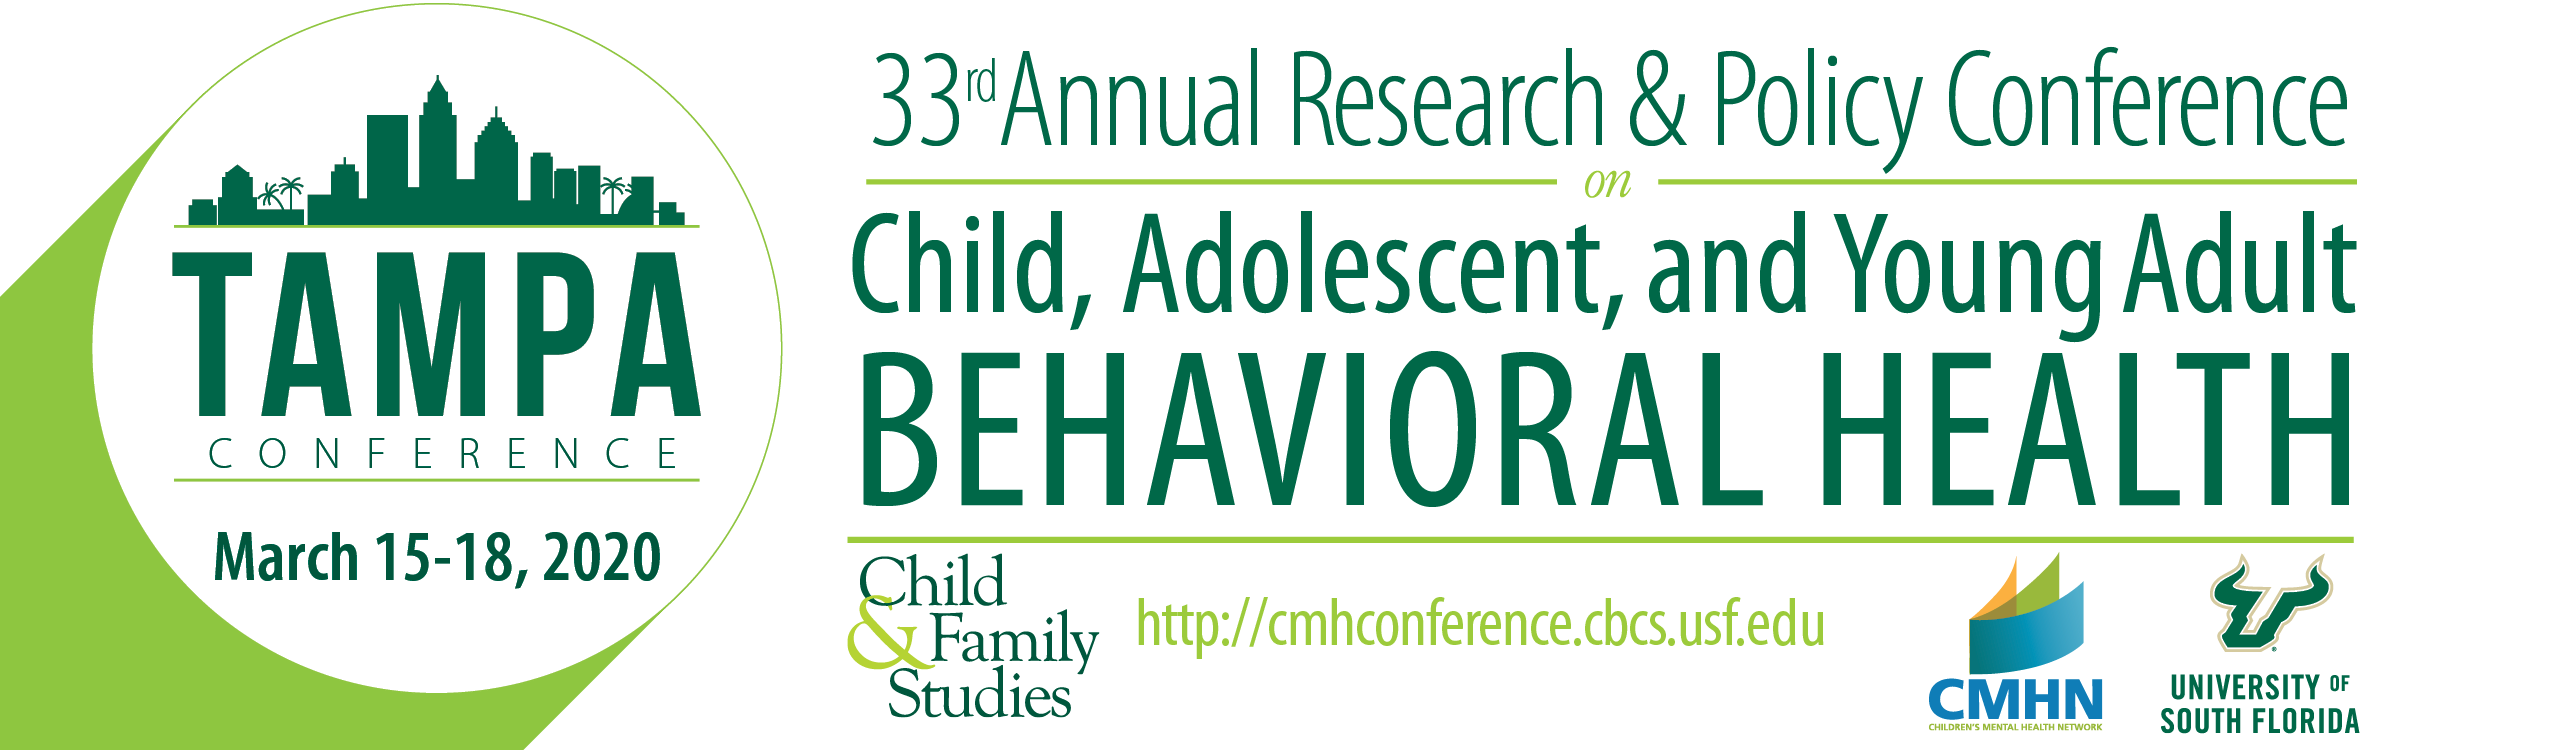 33rd Annual Research & Policy Conference on Child, Adolescent, and Young Adult Behavioral Health